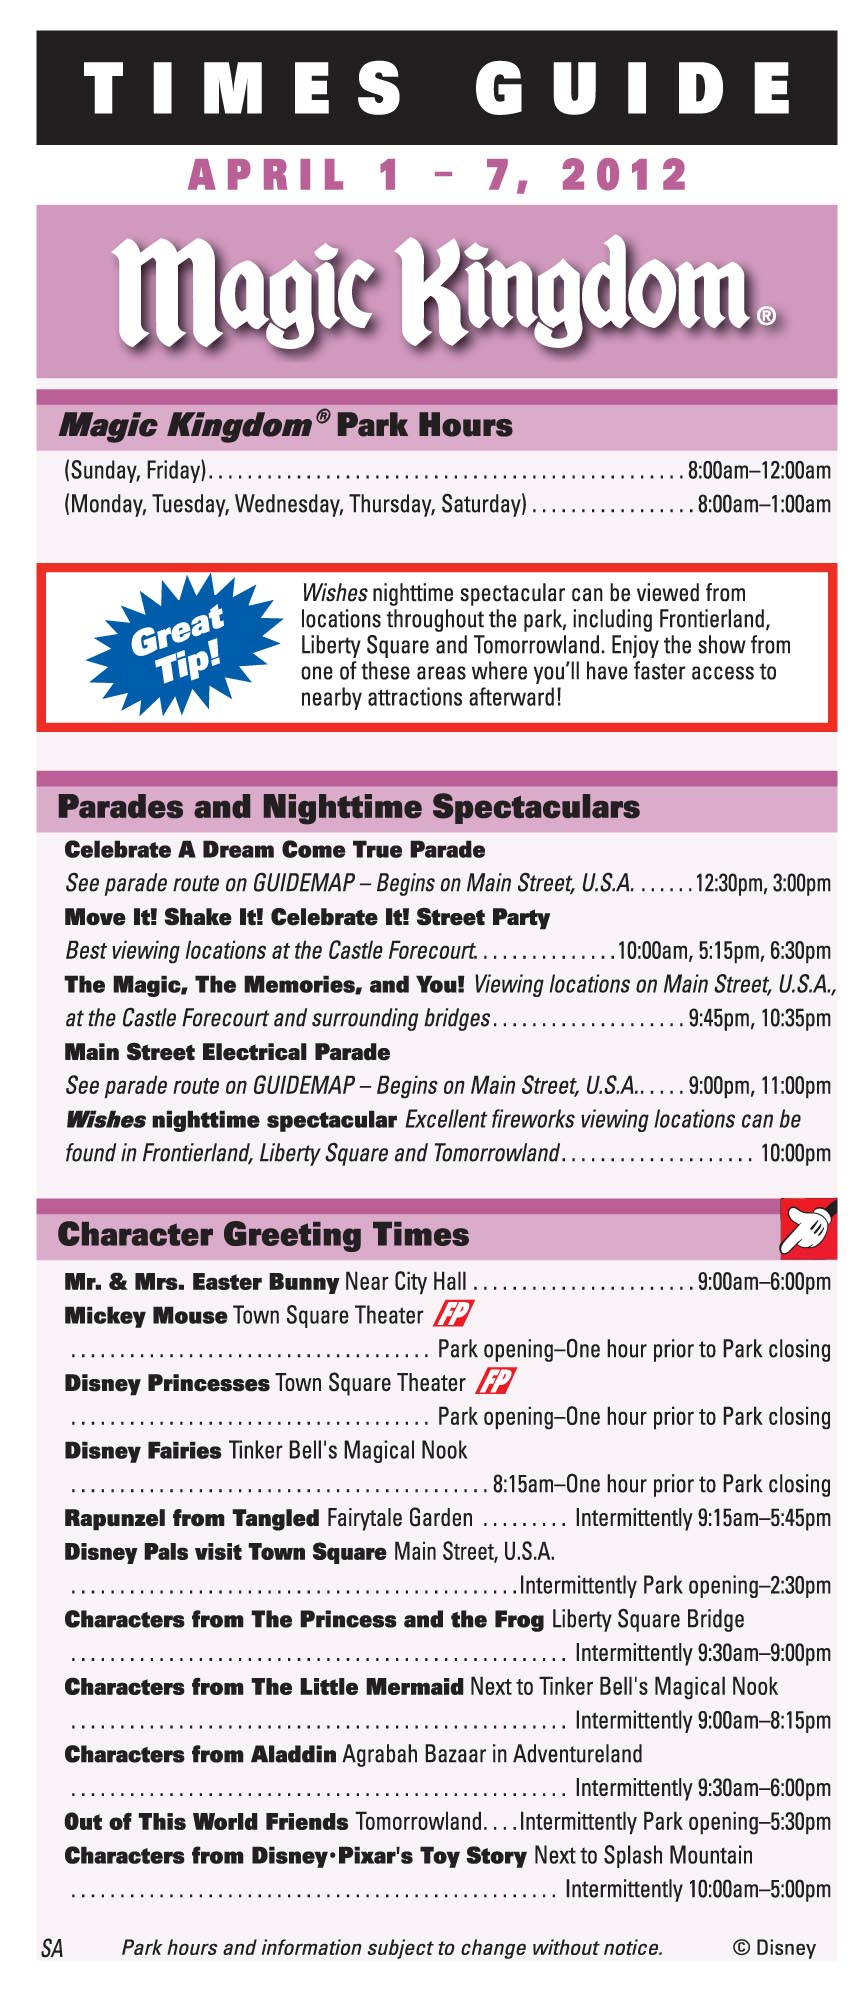 Frequently Asked Questions About Meeting Characters at Disney World ...